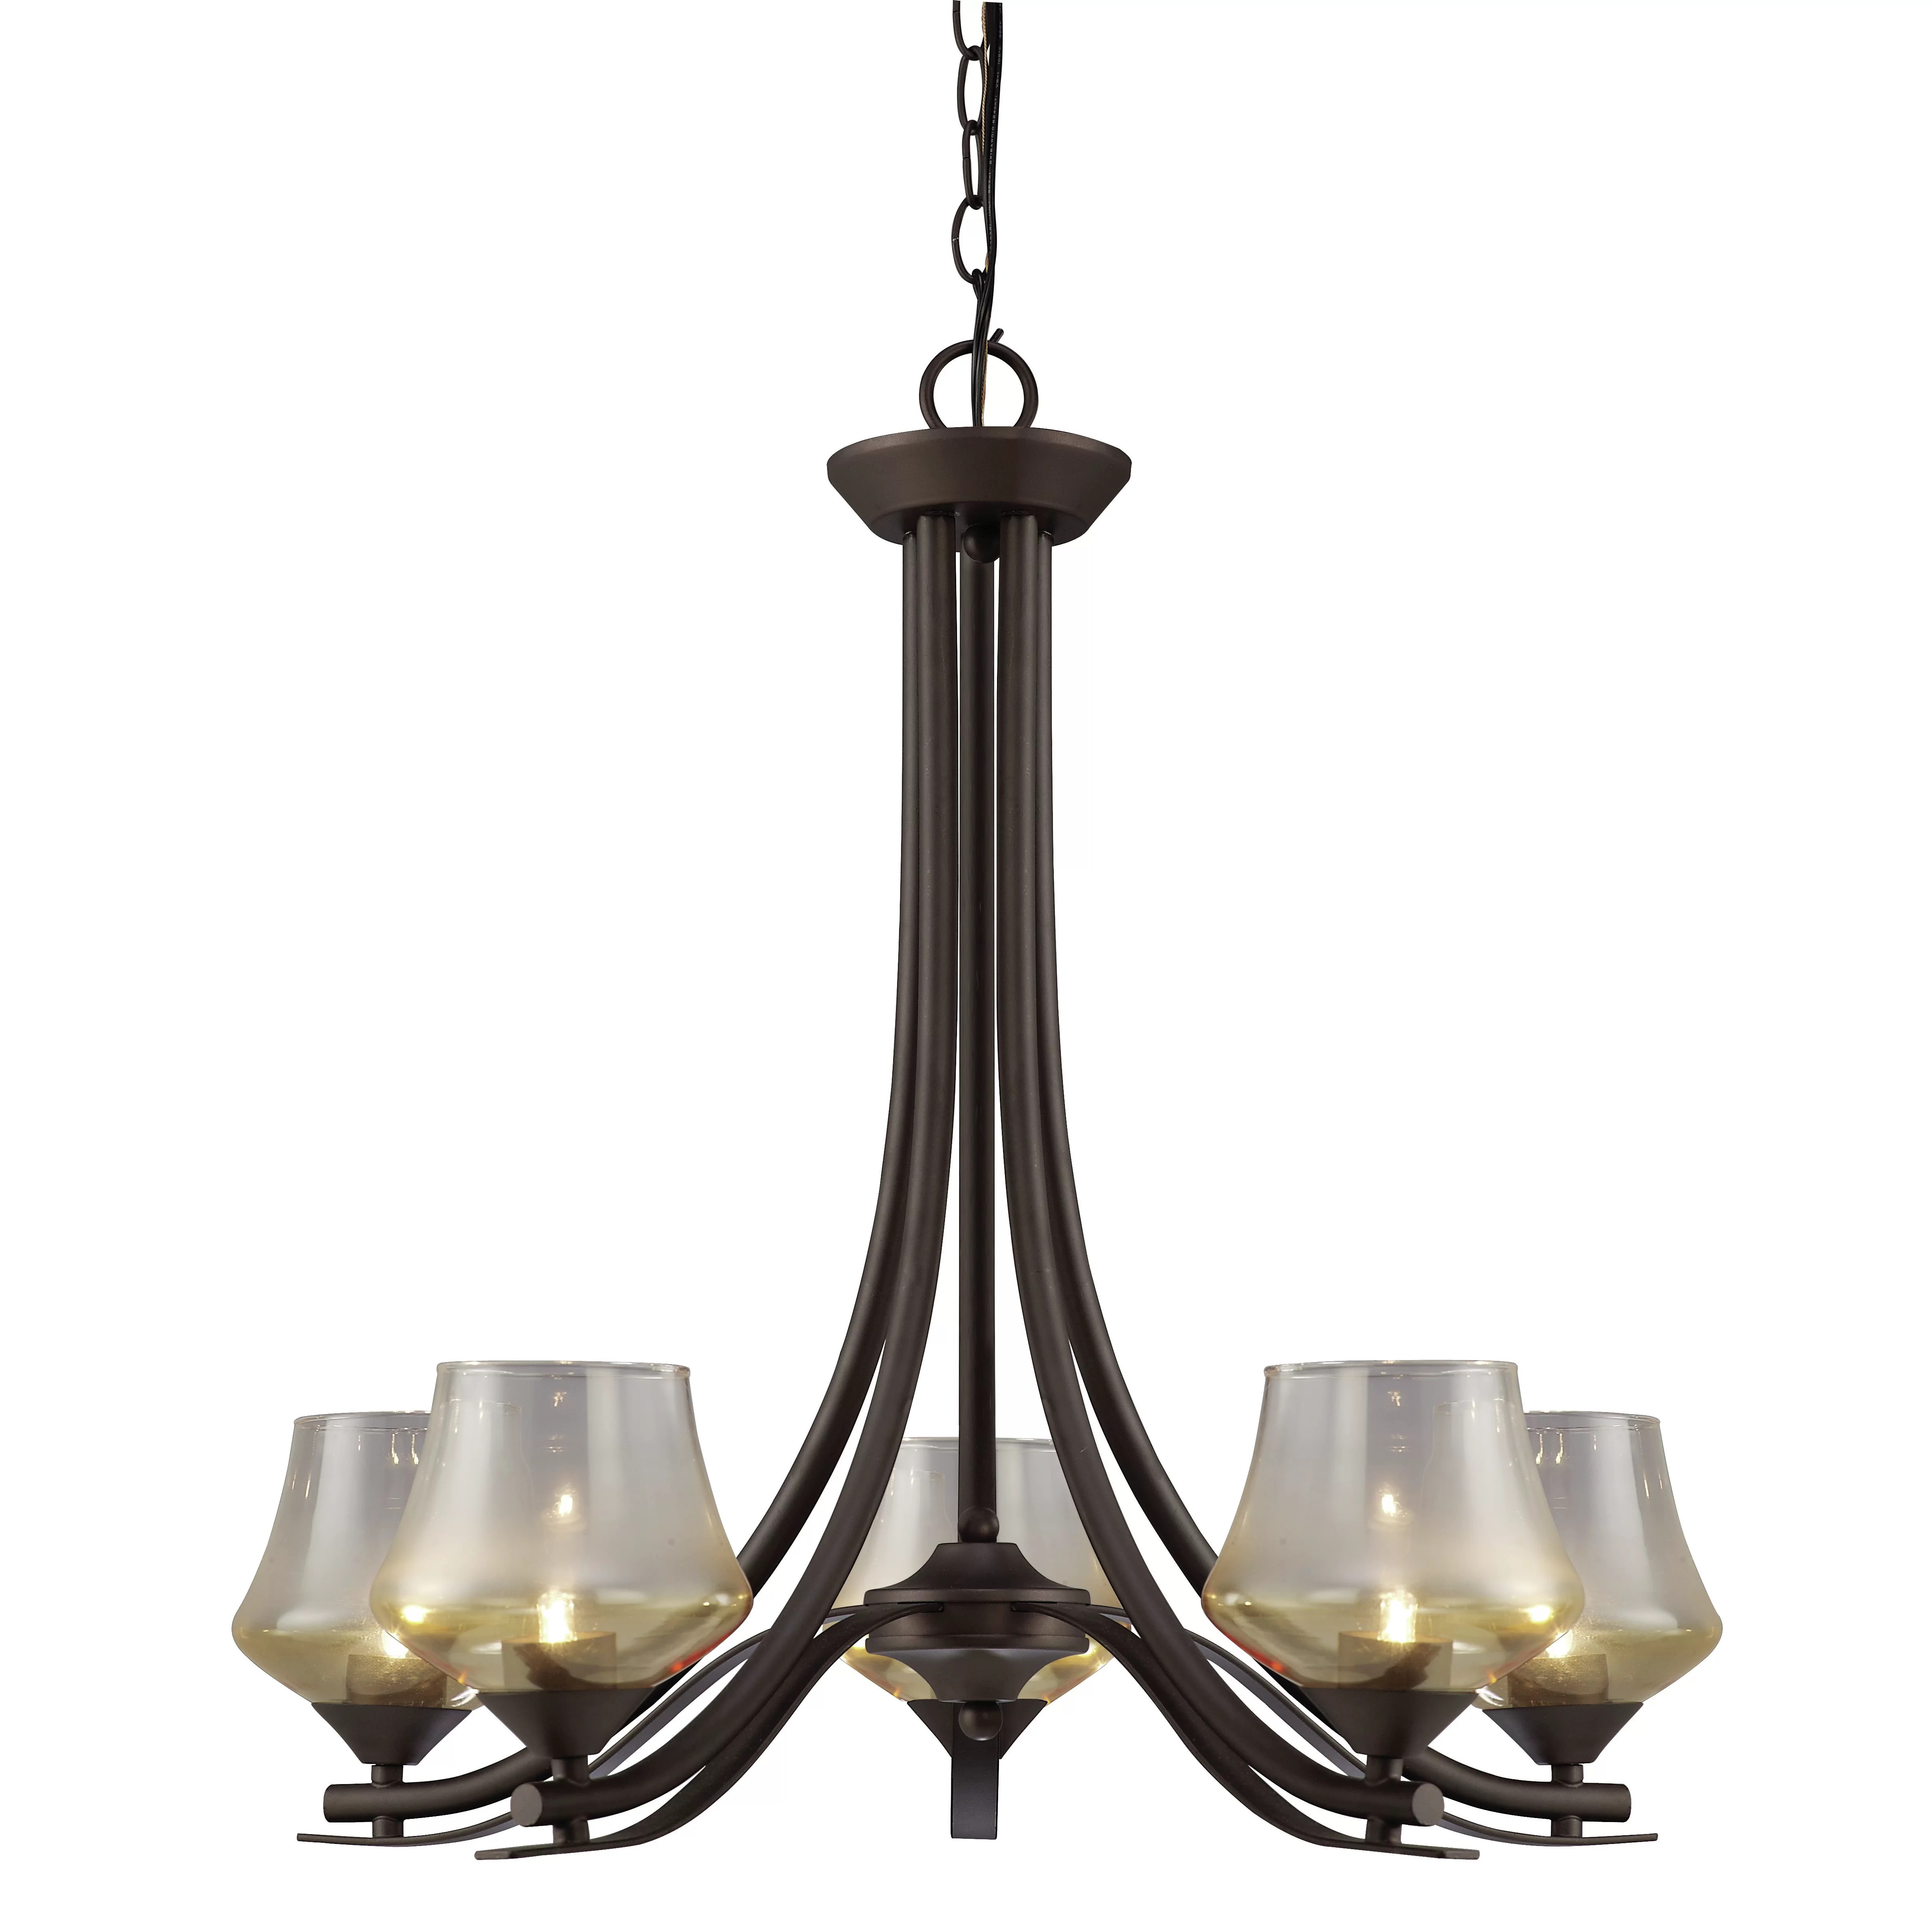 Wayfair Orb Lighting Cooper 5 Light Chandelier | Wayfair